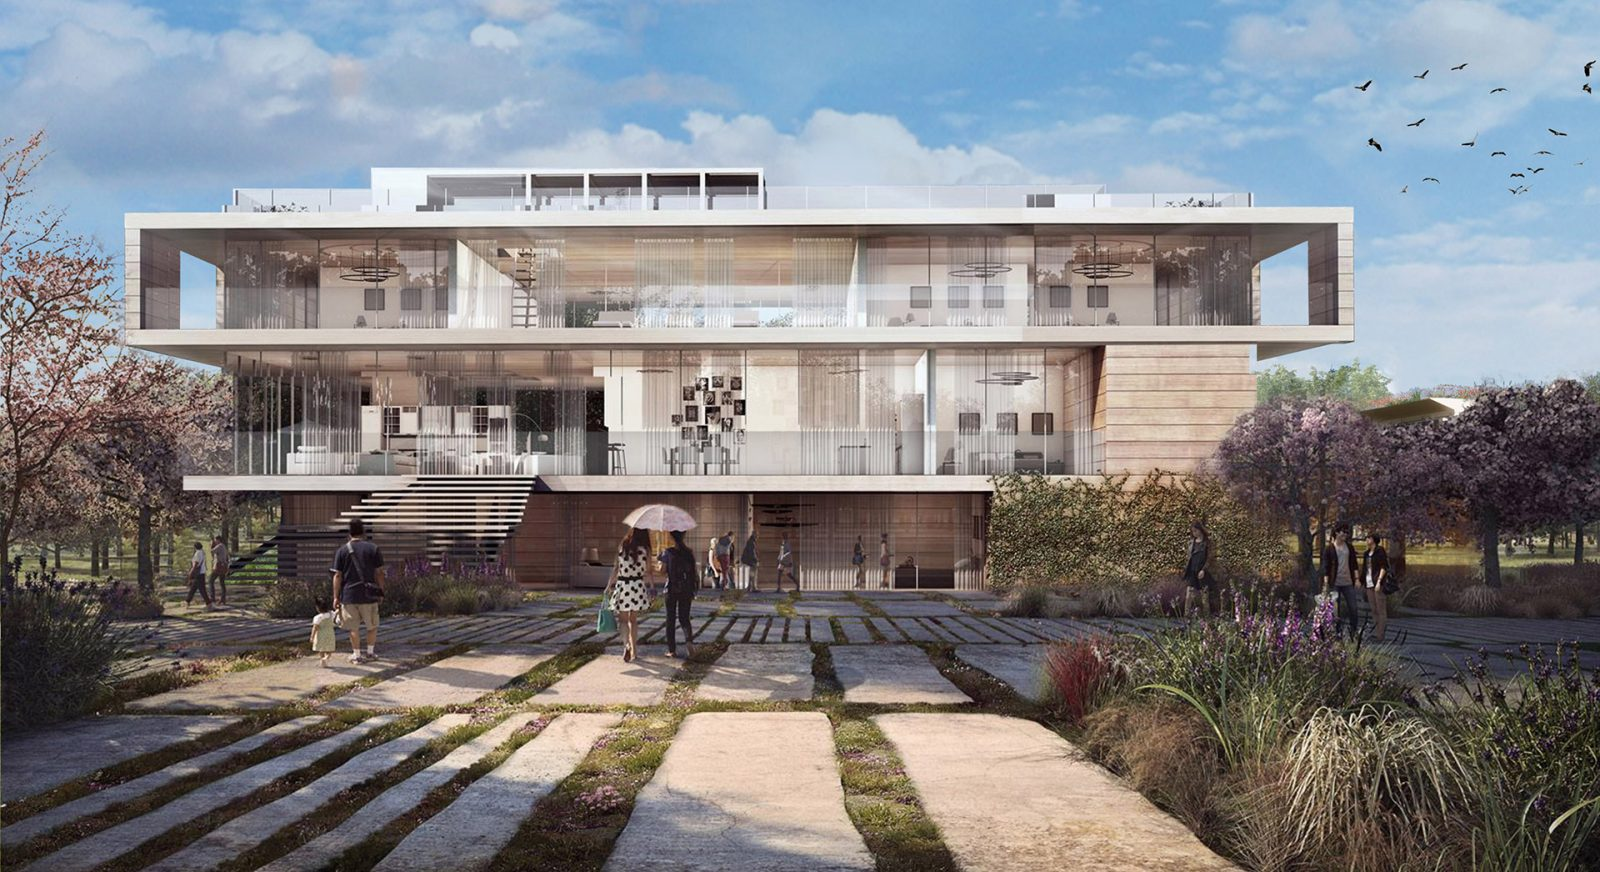 FT best modern mansion house architecture architects jersey architects1 1